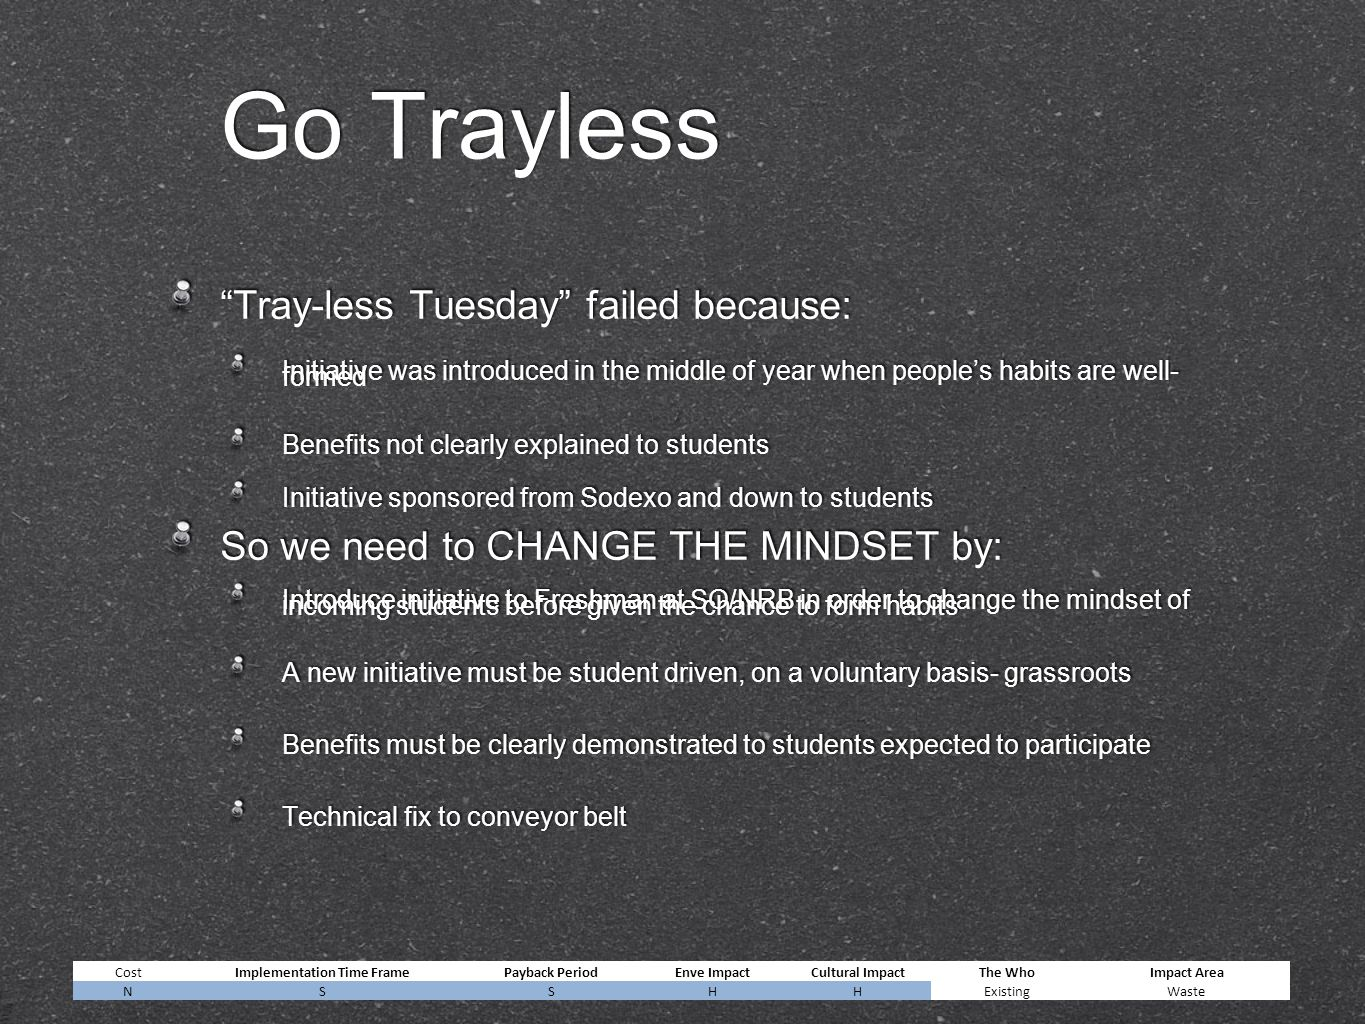 Go Trayless Tray-less Tuesday failed because: Initiative was introduced in the middle of year when people's habits are well- formed Benefits not clearly explained to students Initiative sponsored from Sodexo and down to students So we need to CHANGE THE MINDSET by: Introduce initiative to Freshman at SO/NRB in order to change the mindset of incoming students before given the chance to form habits A new initiative must be student driven, on a voluntary basis- grassroots Benefits must be clearly demonstrated to students expected to participate Technical fix to conveyor belt Tray-less Tuesday failed because: Initiative was introduced in the middle of year when people's habits are well- formed Benefits not clearly explained to students Initiative sponsored from Sodexo and down to students So we need to CHANGE THE MINDSET by: Introduce initiative to Freshman at SO/NRB in order to change the mindset of incoming students before given the chance to form habits A new initiative must be student driven, on a voluntary basis- grassroots Benefits must be clearly demonstrated to students expected to participate Technical fix to conveyor belt CostImplementation Time FramePayback PeriodEnve ImpactCultural ImpactThe WhoImpact Area NSSHHExistingWaste